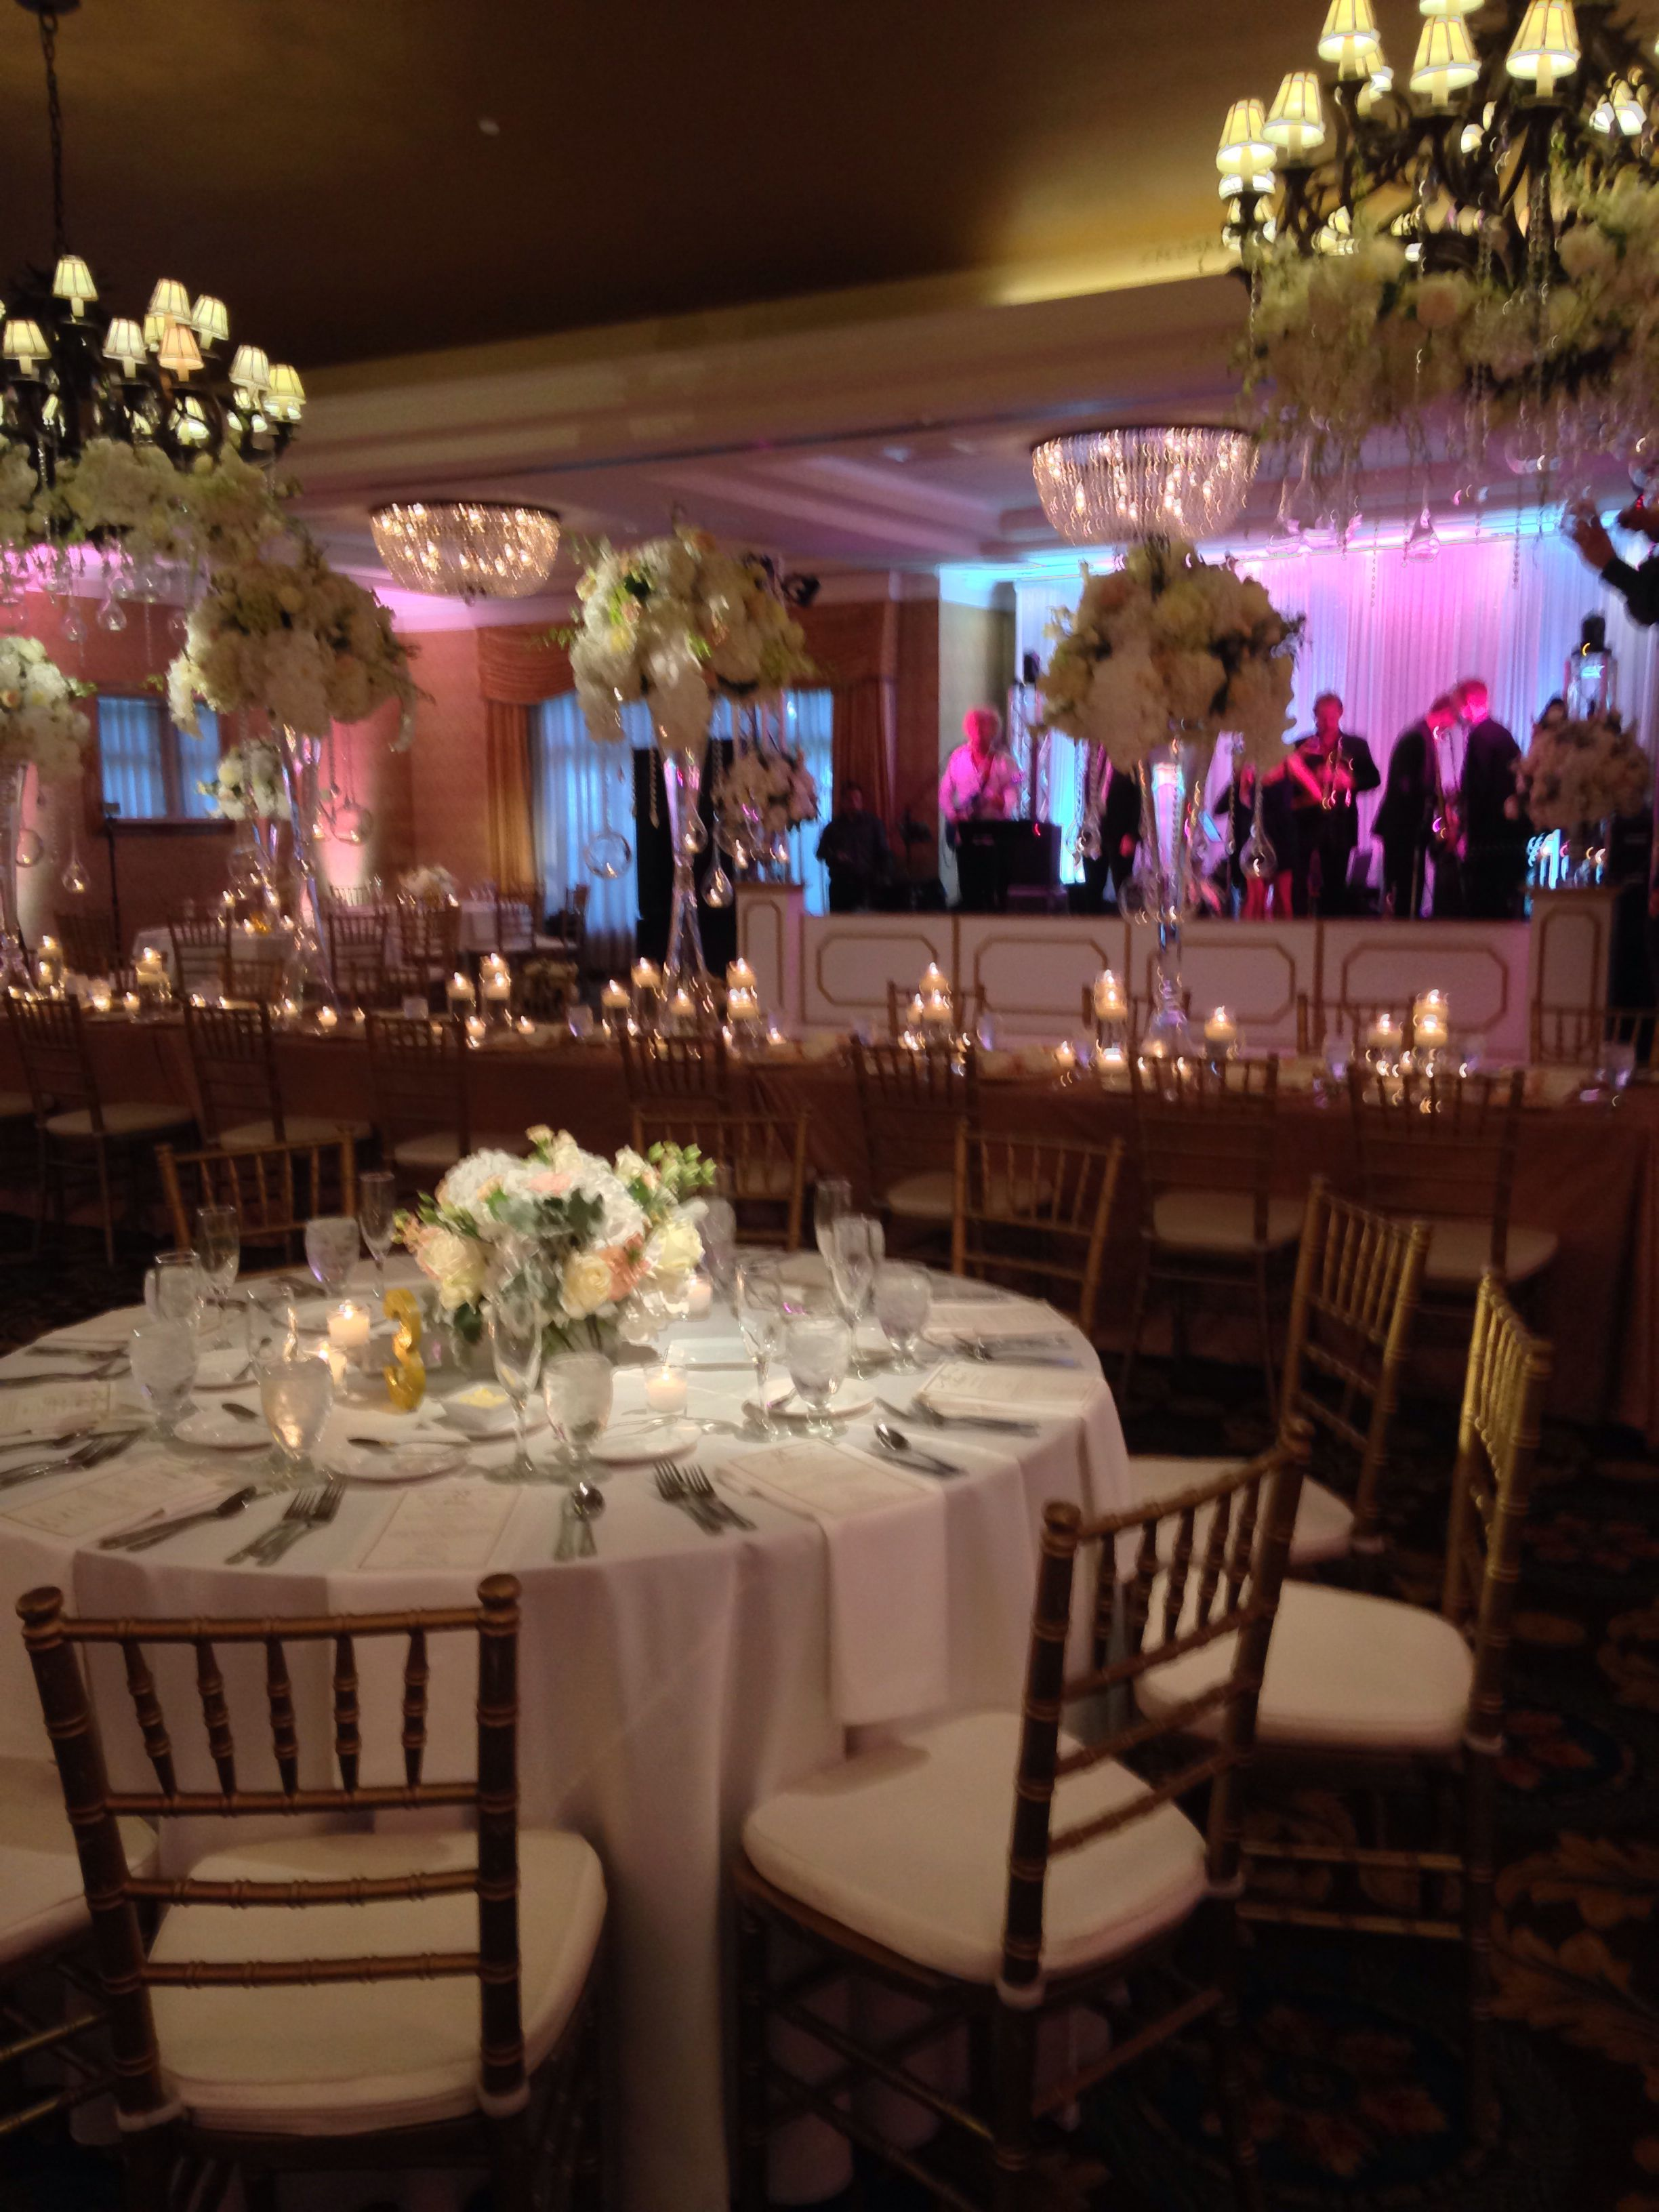 Decor by Xquisite and florals by Garden Gate. | STONEBRIAR WEDDINGS ...